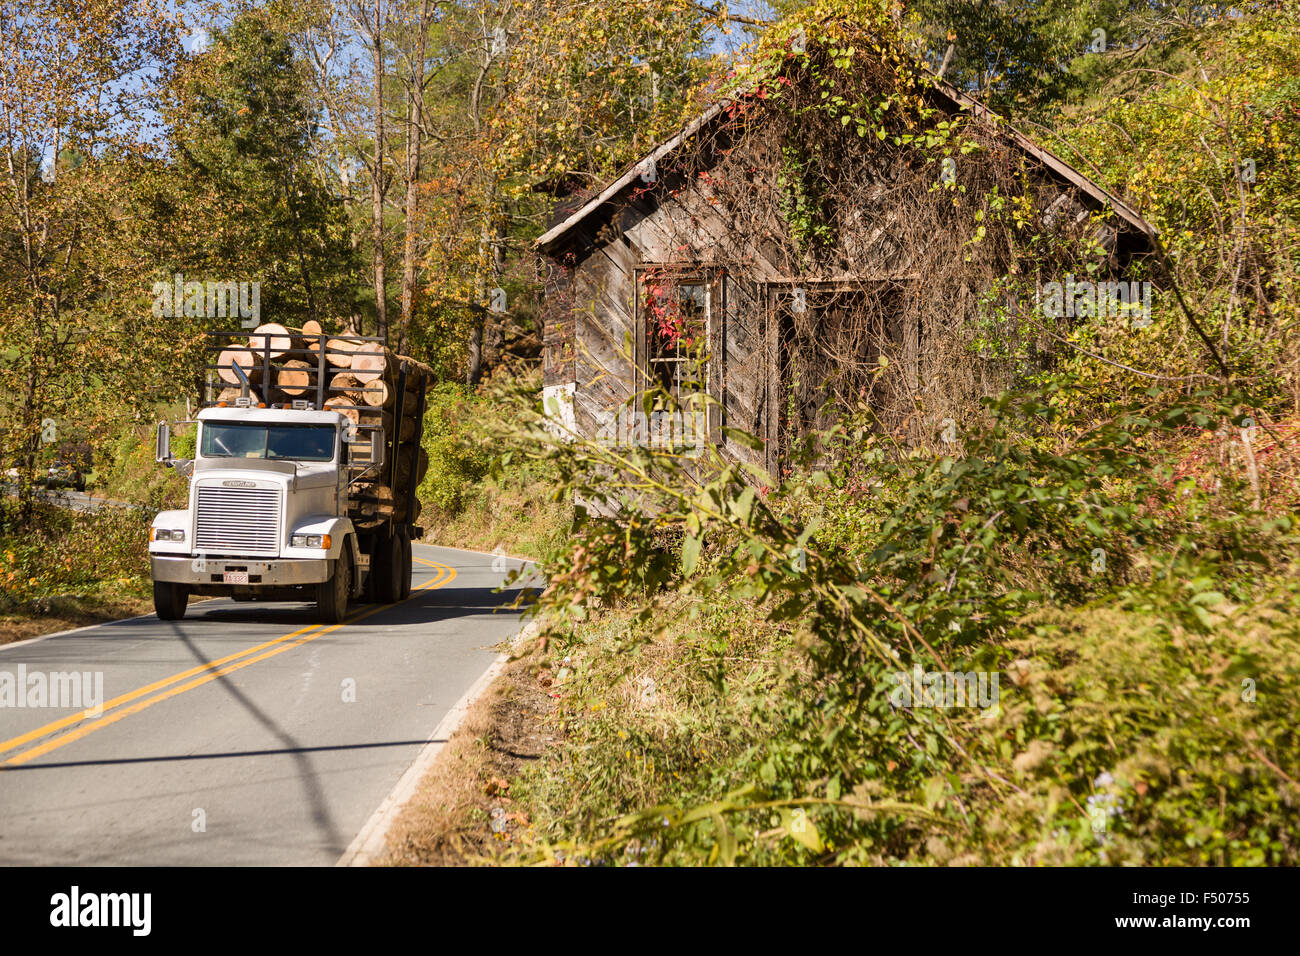 A logging truck passes an old wooden barn on a rural road in ...